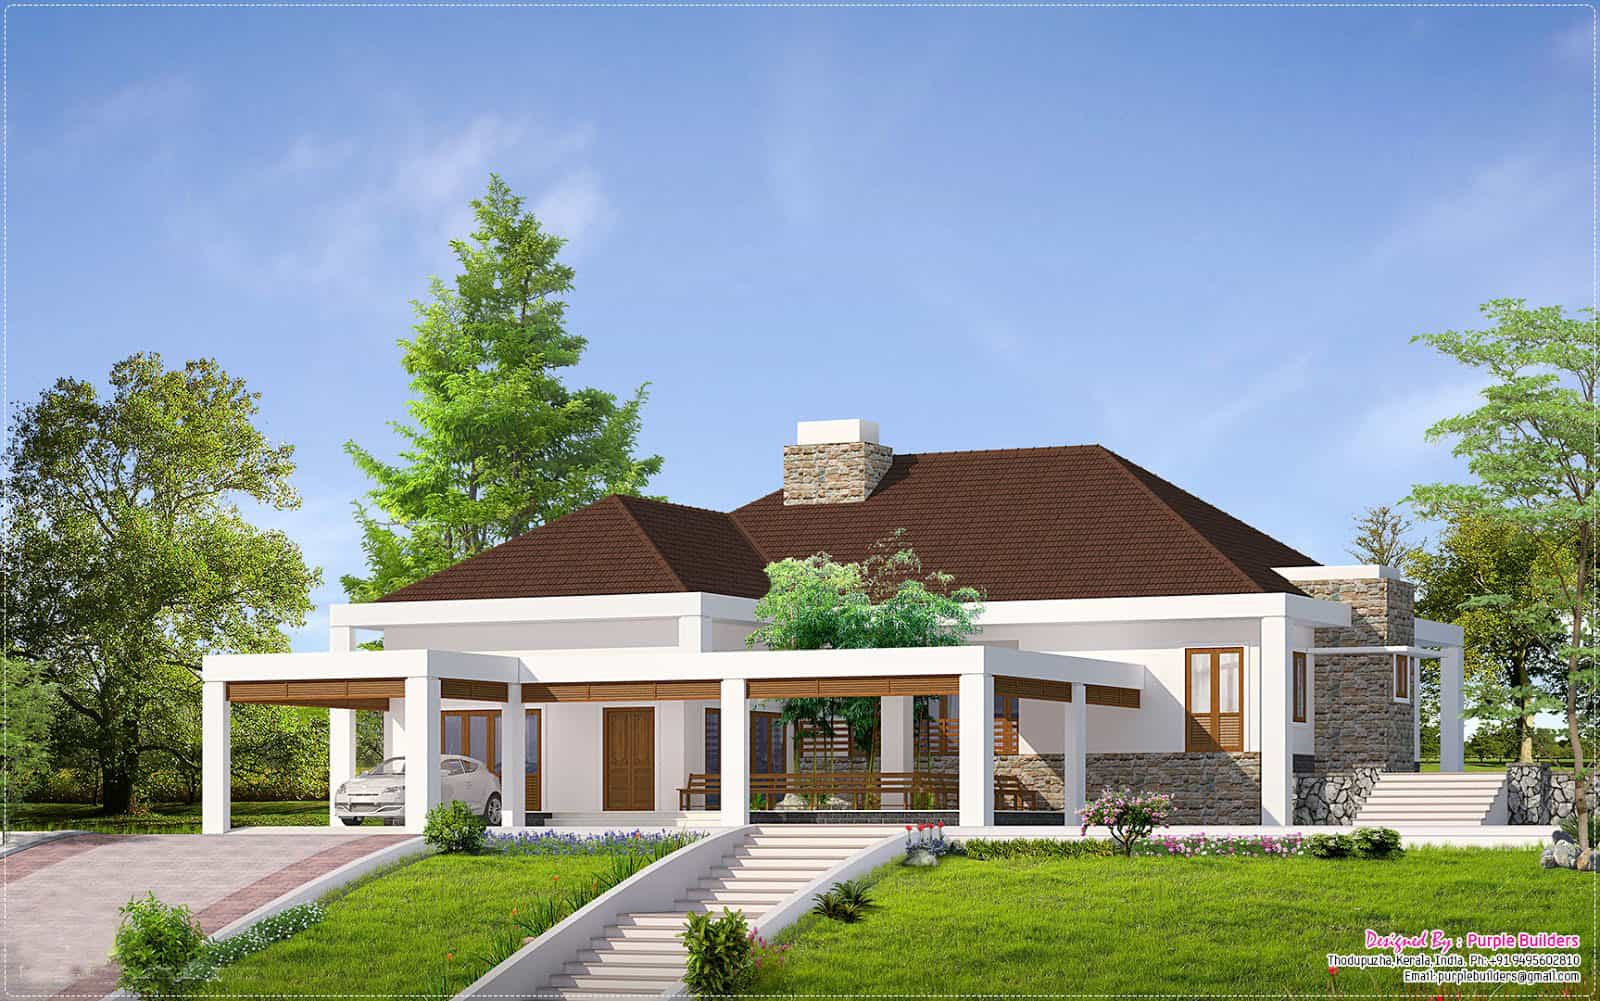 House design under 20 lakhs - Kerala Home Design 20 Lakhs Ideas About House Model Designs Free Home Designs Photos Ideas